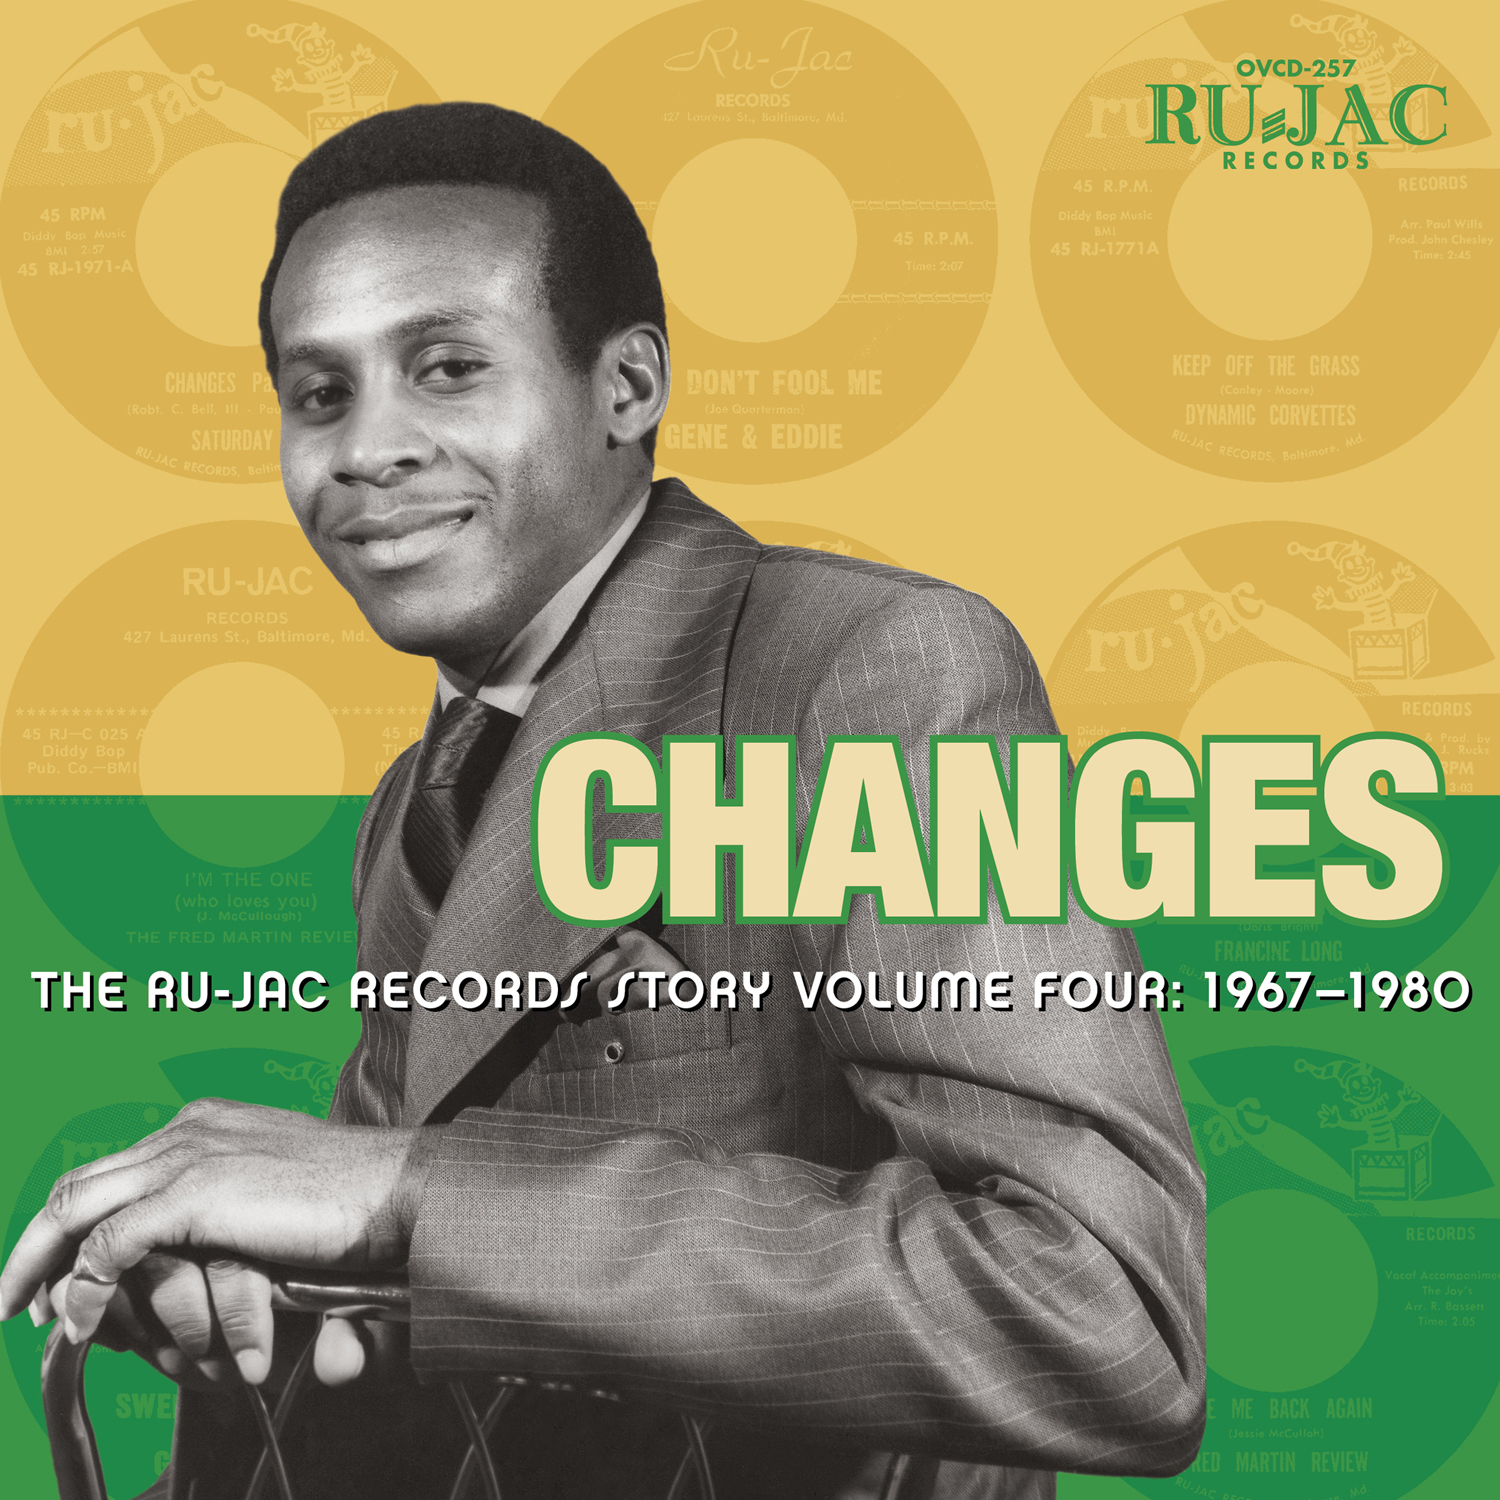 The-Ru-Jac-Records-Story-Volume-4.jpg